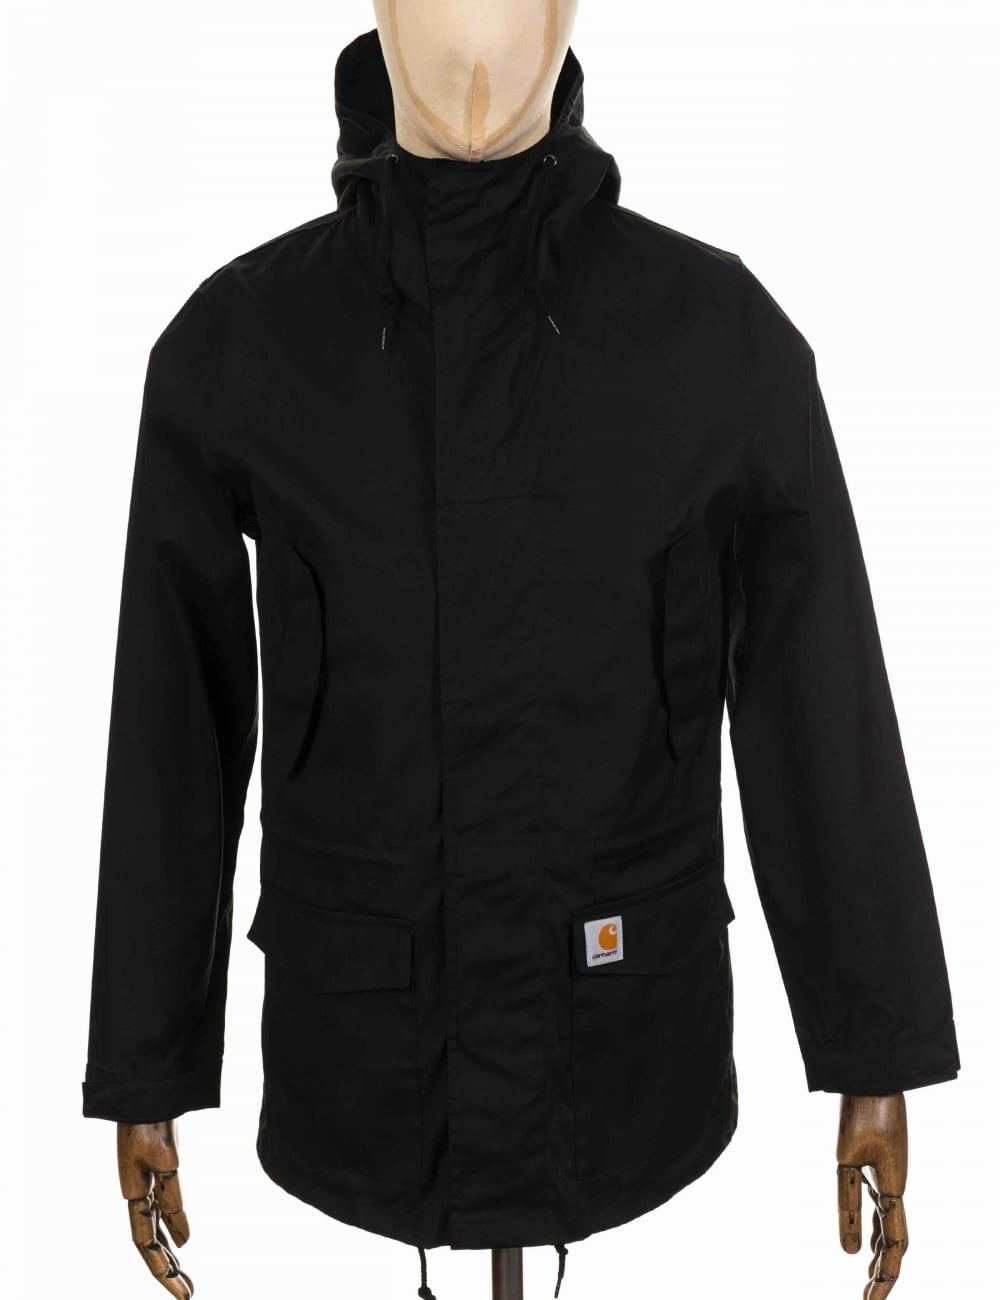 Black From Uk Store Clothing Buddha Battle Fat Wip Parka Carhartt OqRt6t